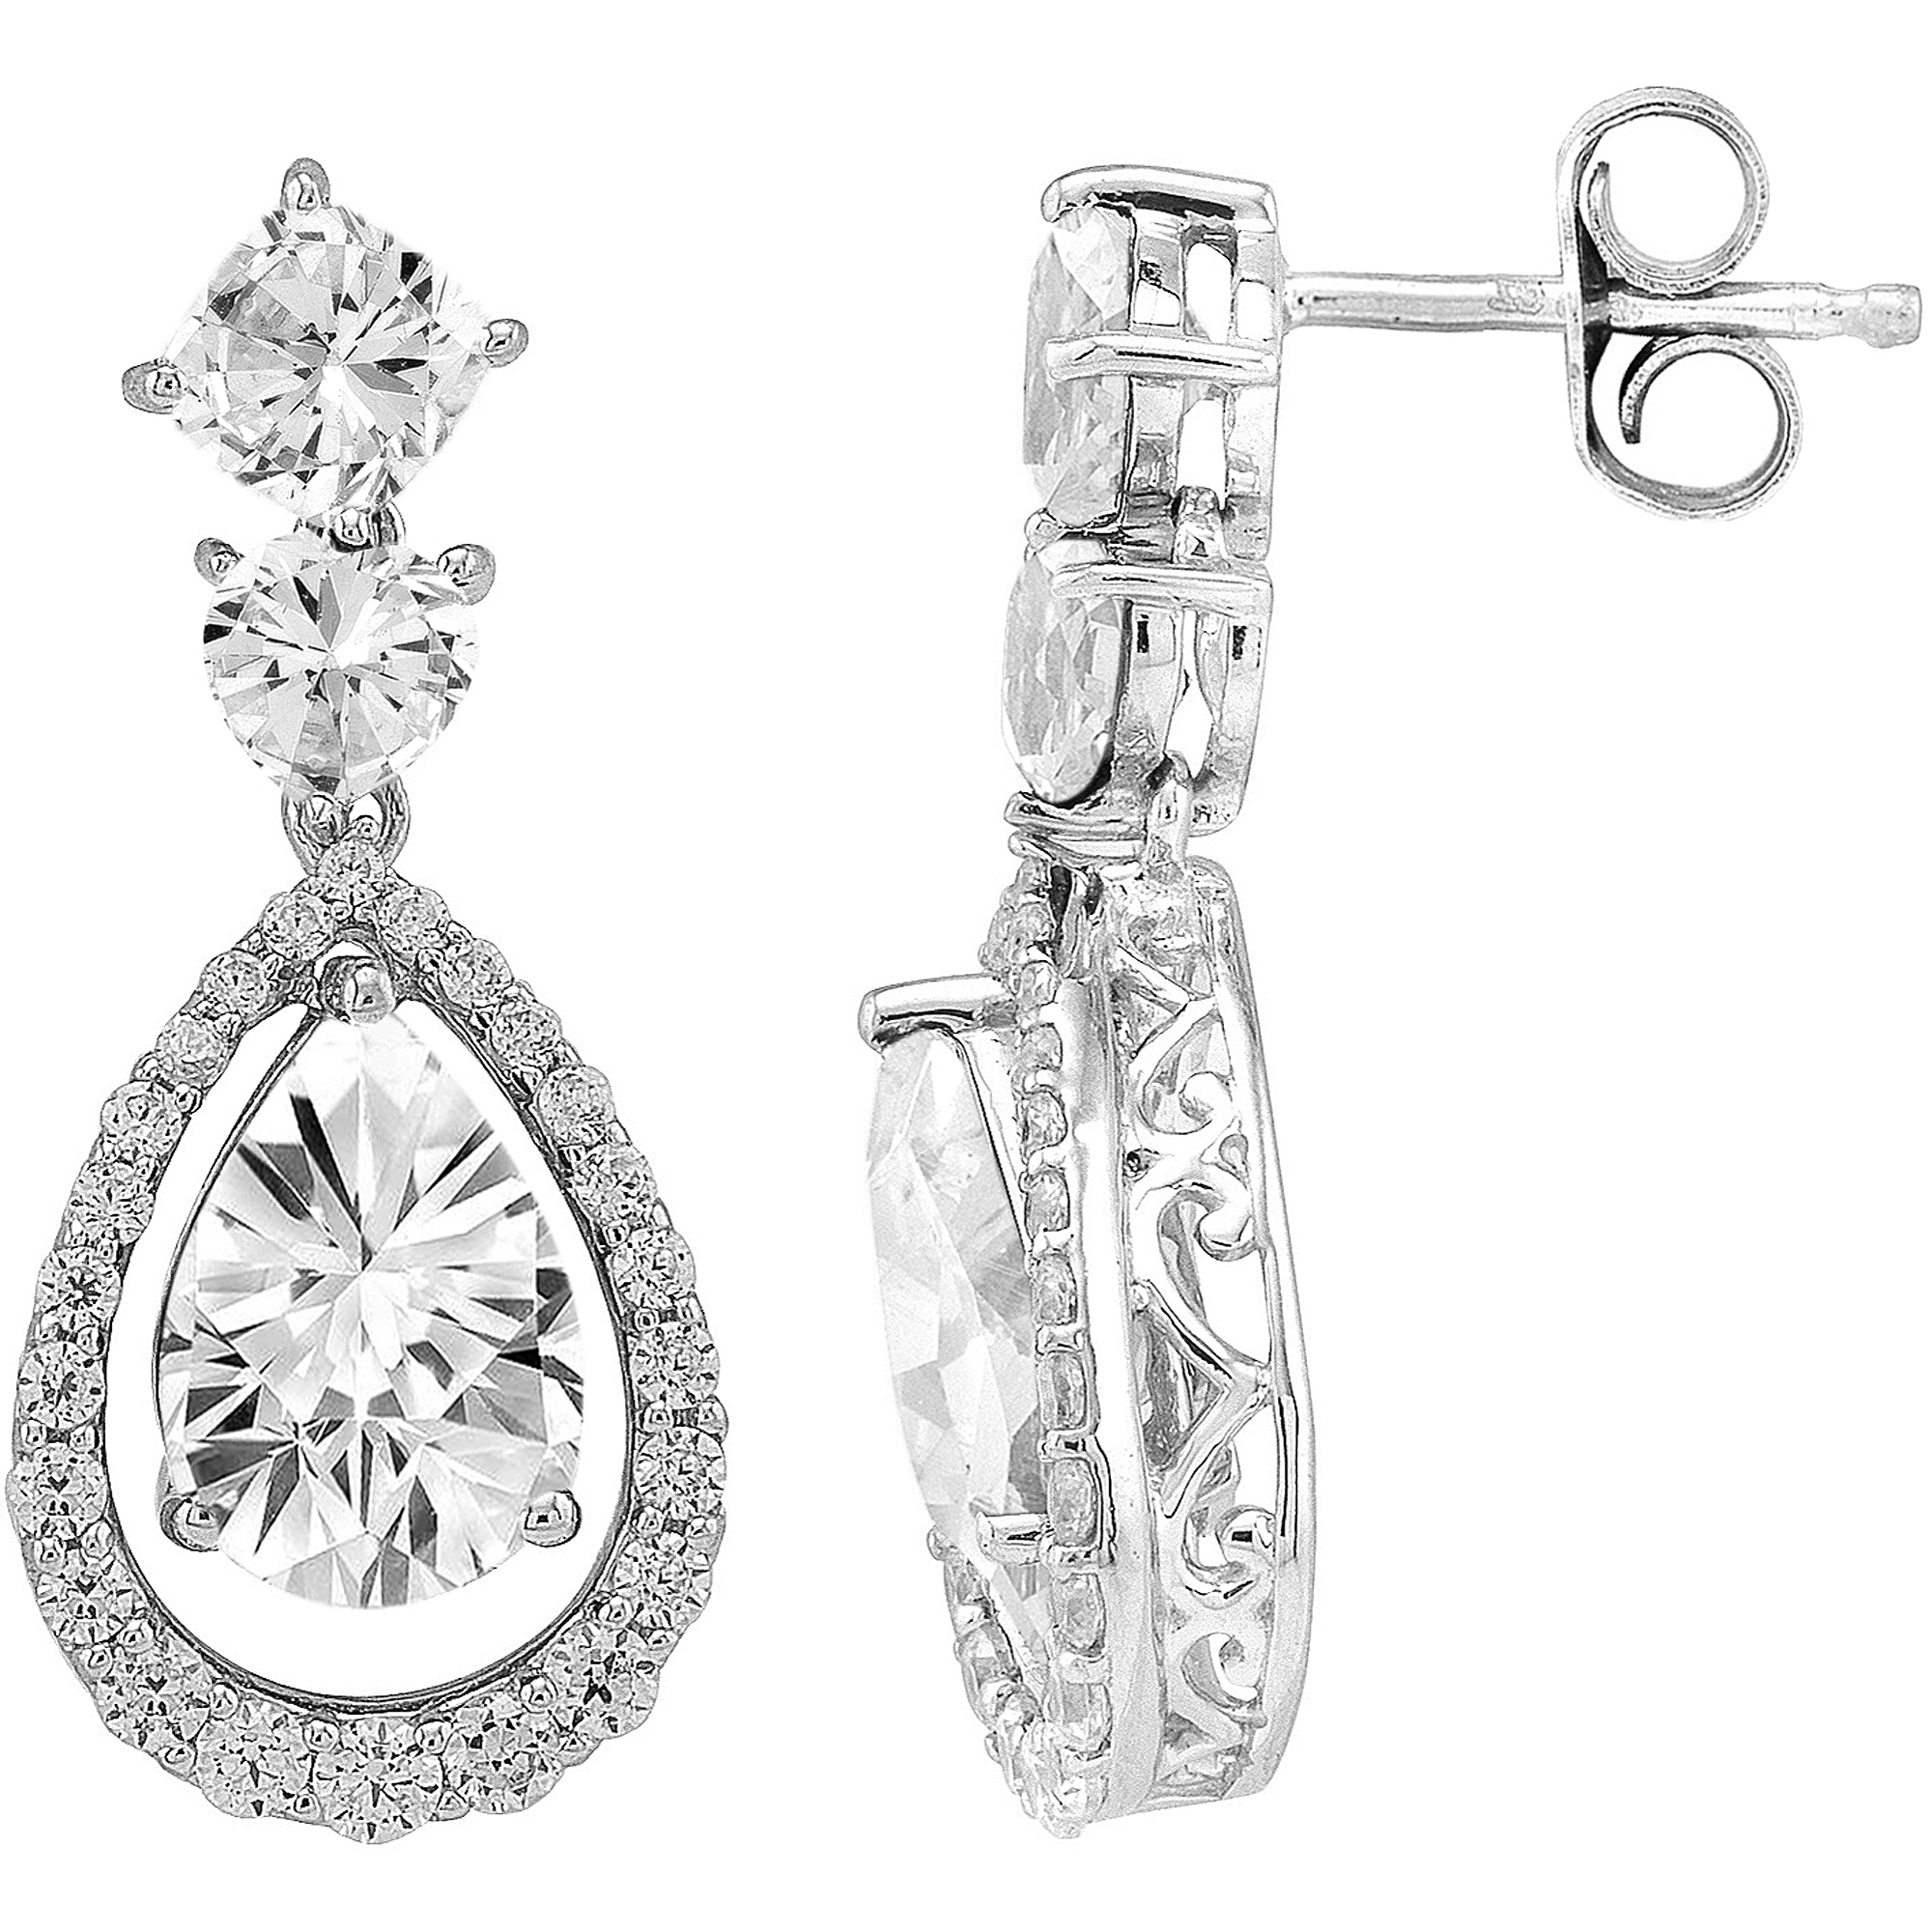 Her Special Day Jewelry CZ Sterling Silver Earrings